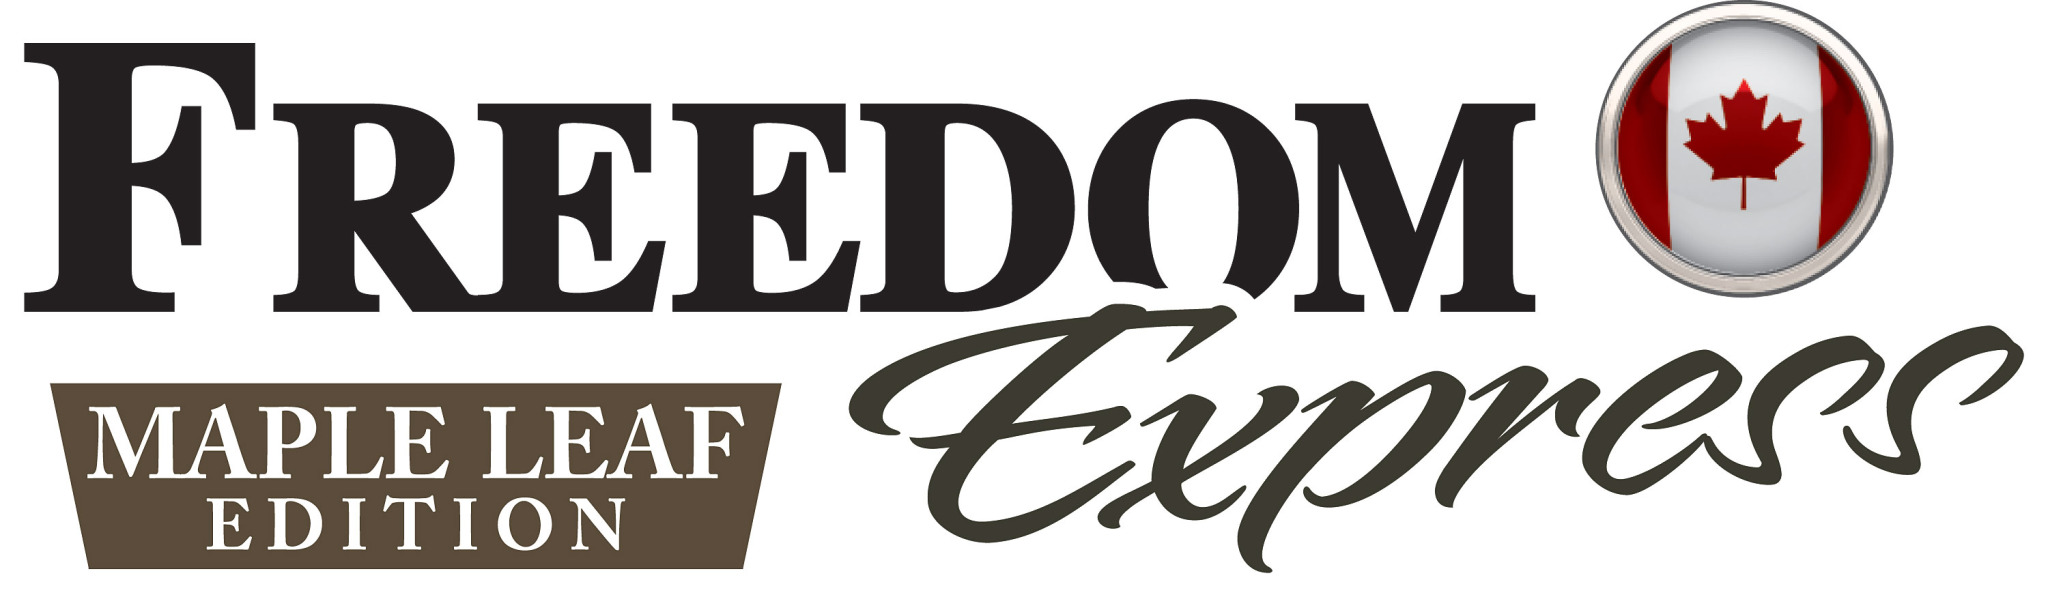 Freedom Express Maple Leaf Travel Trailer Logo